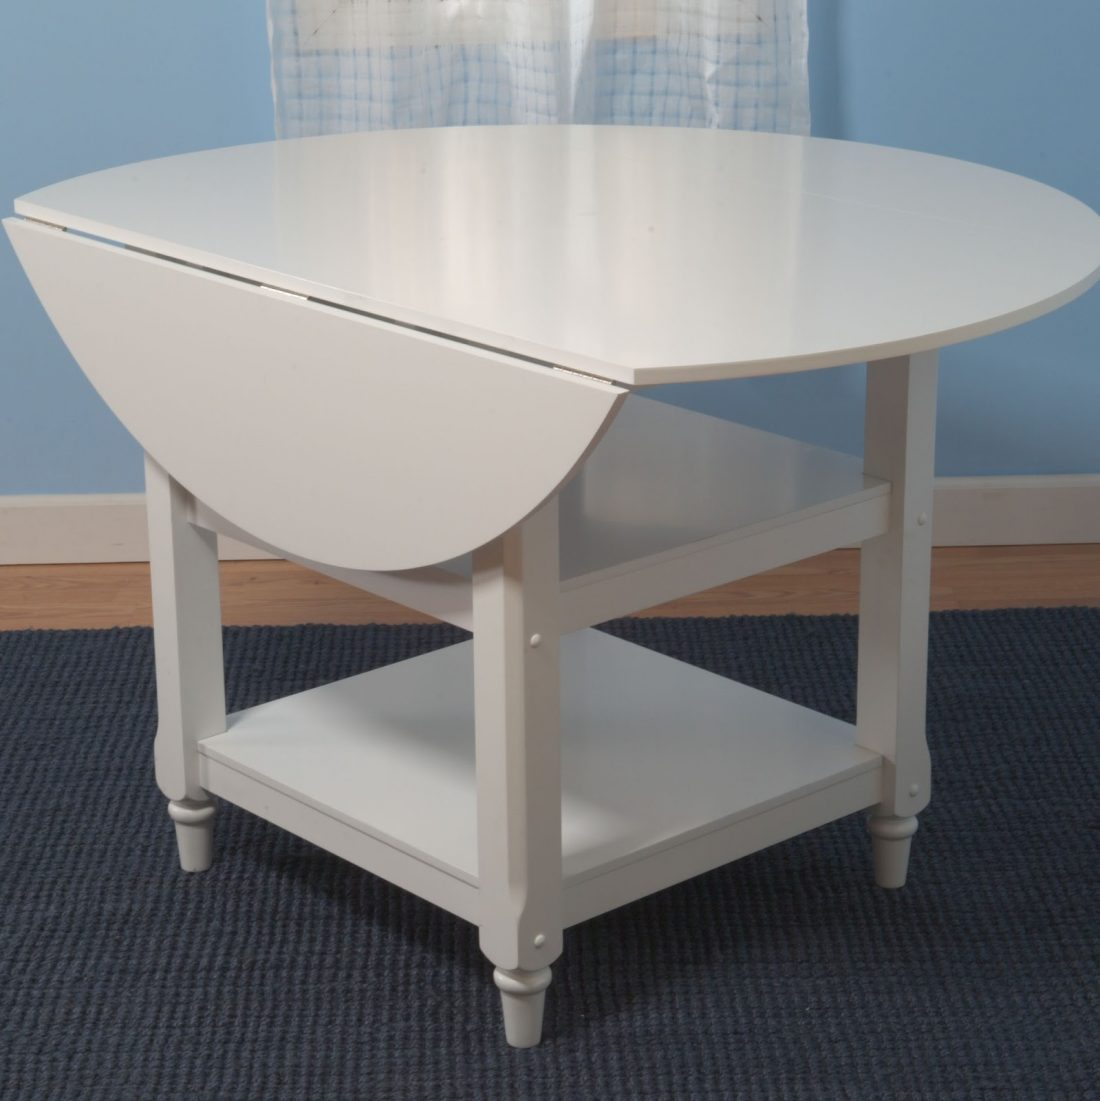 Pottery Barn Shayne Drop Leaf Kitchen Table – Copycatchic Within Most Popular Black Shayne Drop Leaf Kitchen Tables (View 3 of 25)